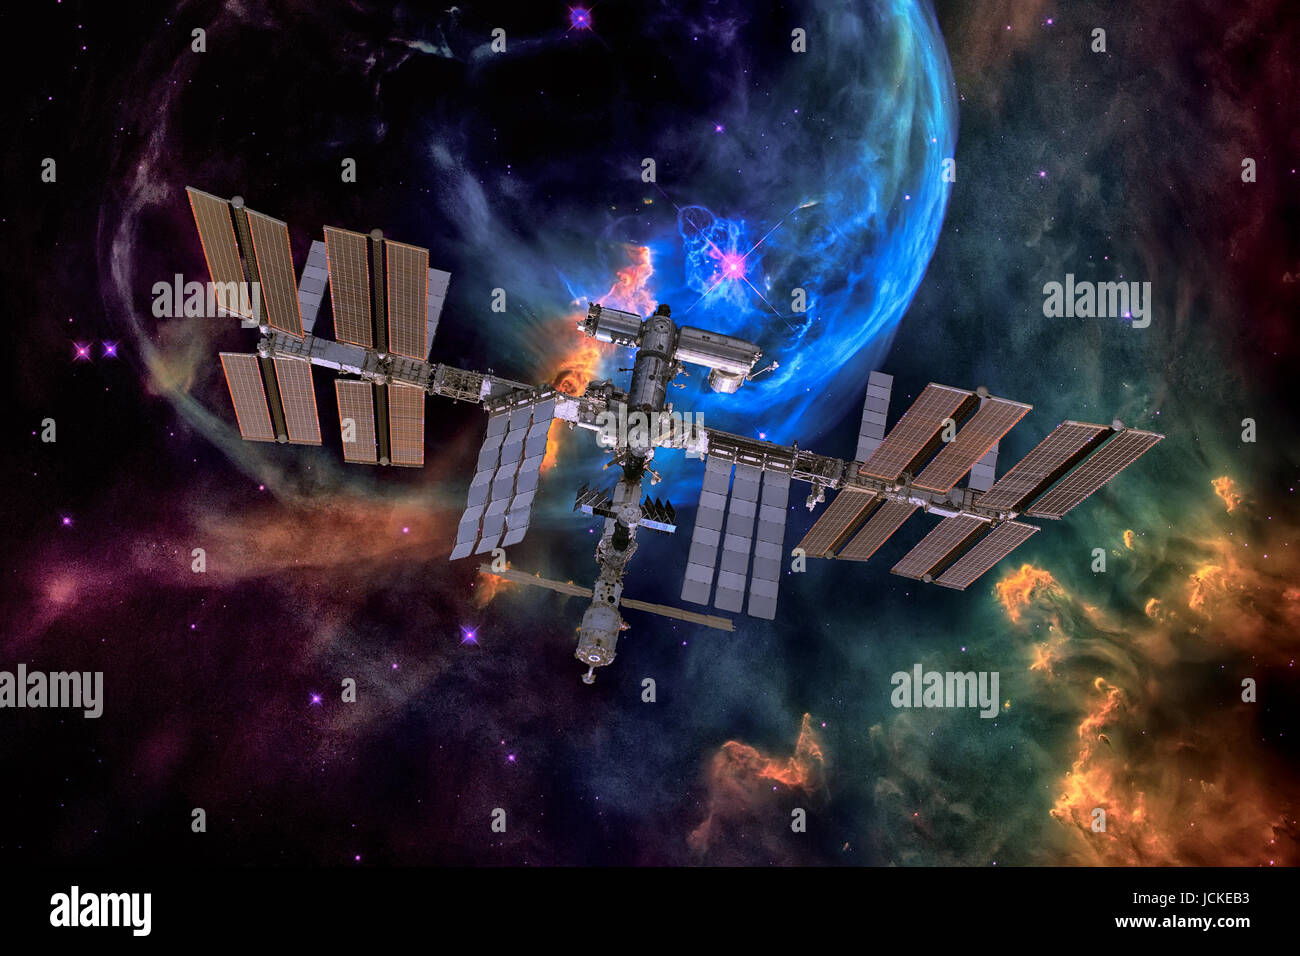 International Space Station over nebula. Elements of this image furnished by NASA. - Stock Image